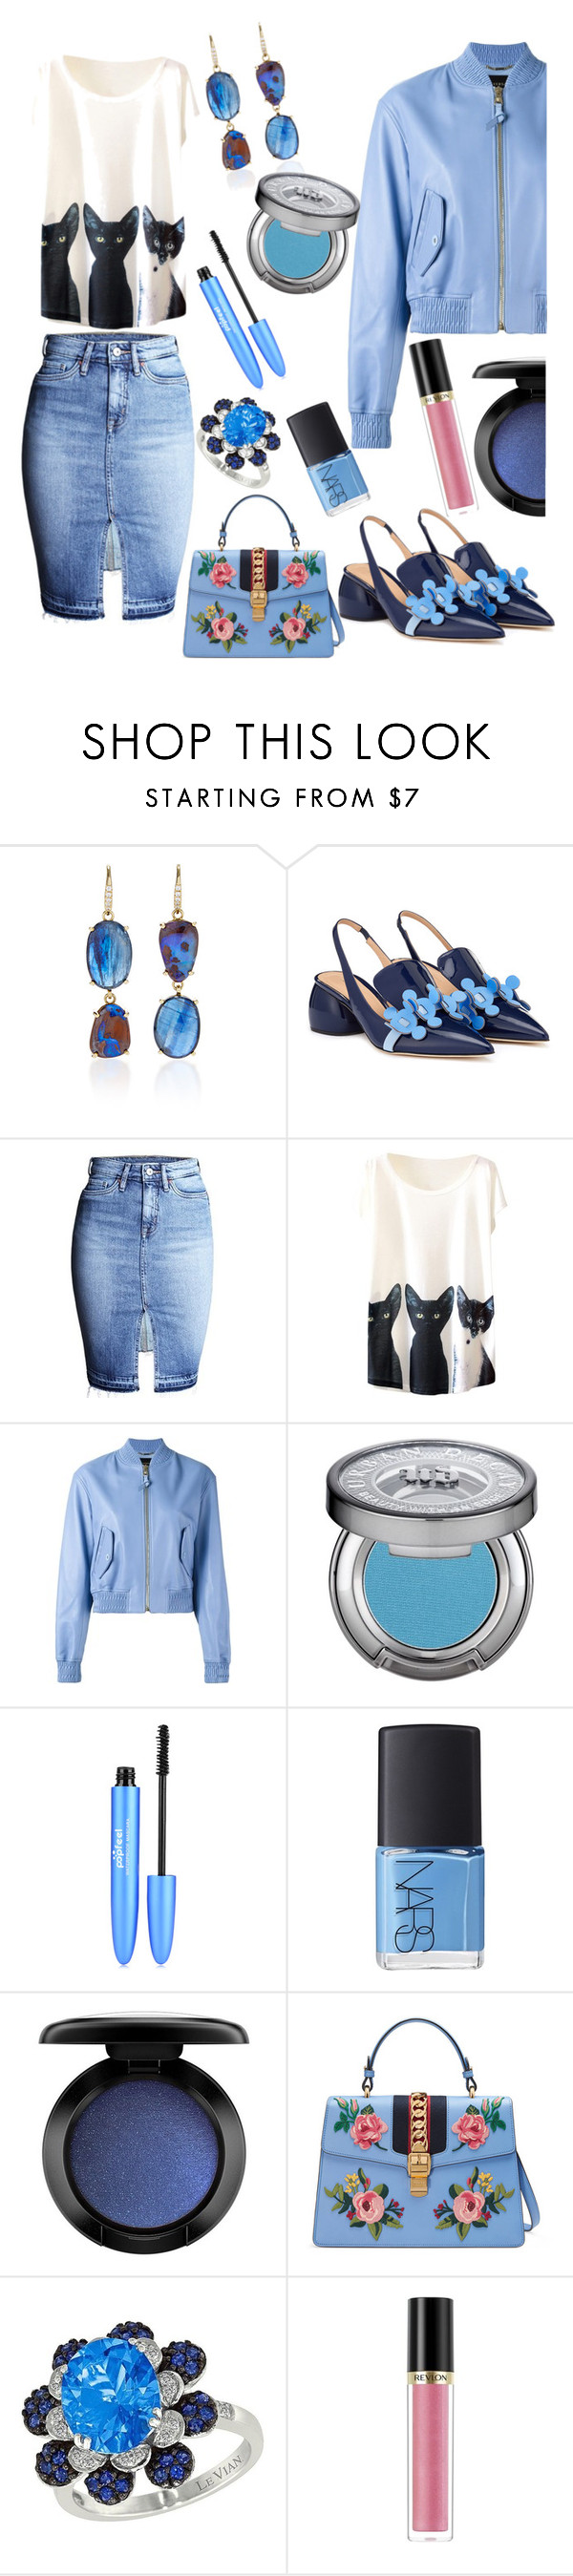 """Untitled #924"" by lisacom ❤ liked on Polyvore featuring Lauren K, Anya Hindmarch, Versace, Urban Decay, NARS Cosmetics, MAC Cosmetics, Gucci, LE VIAN and Revlon"